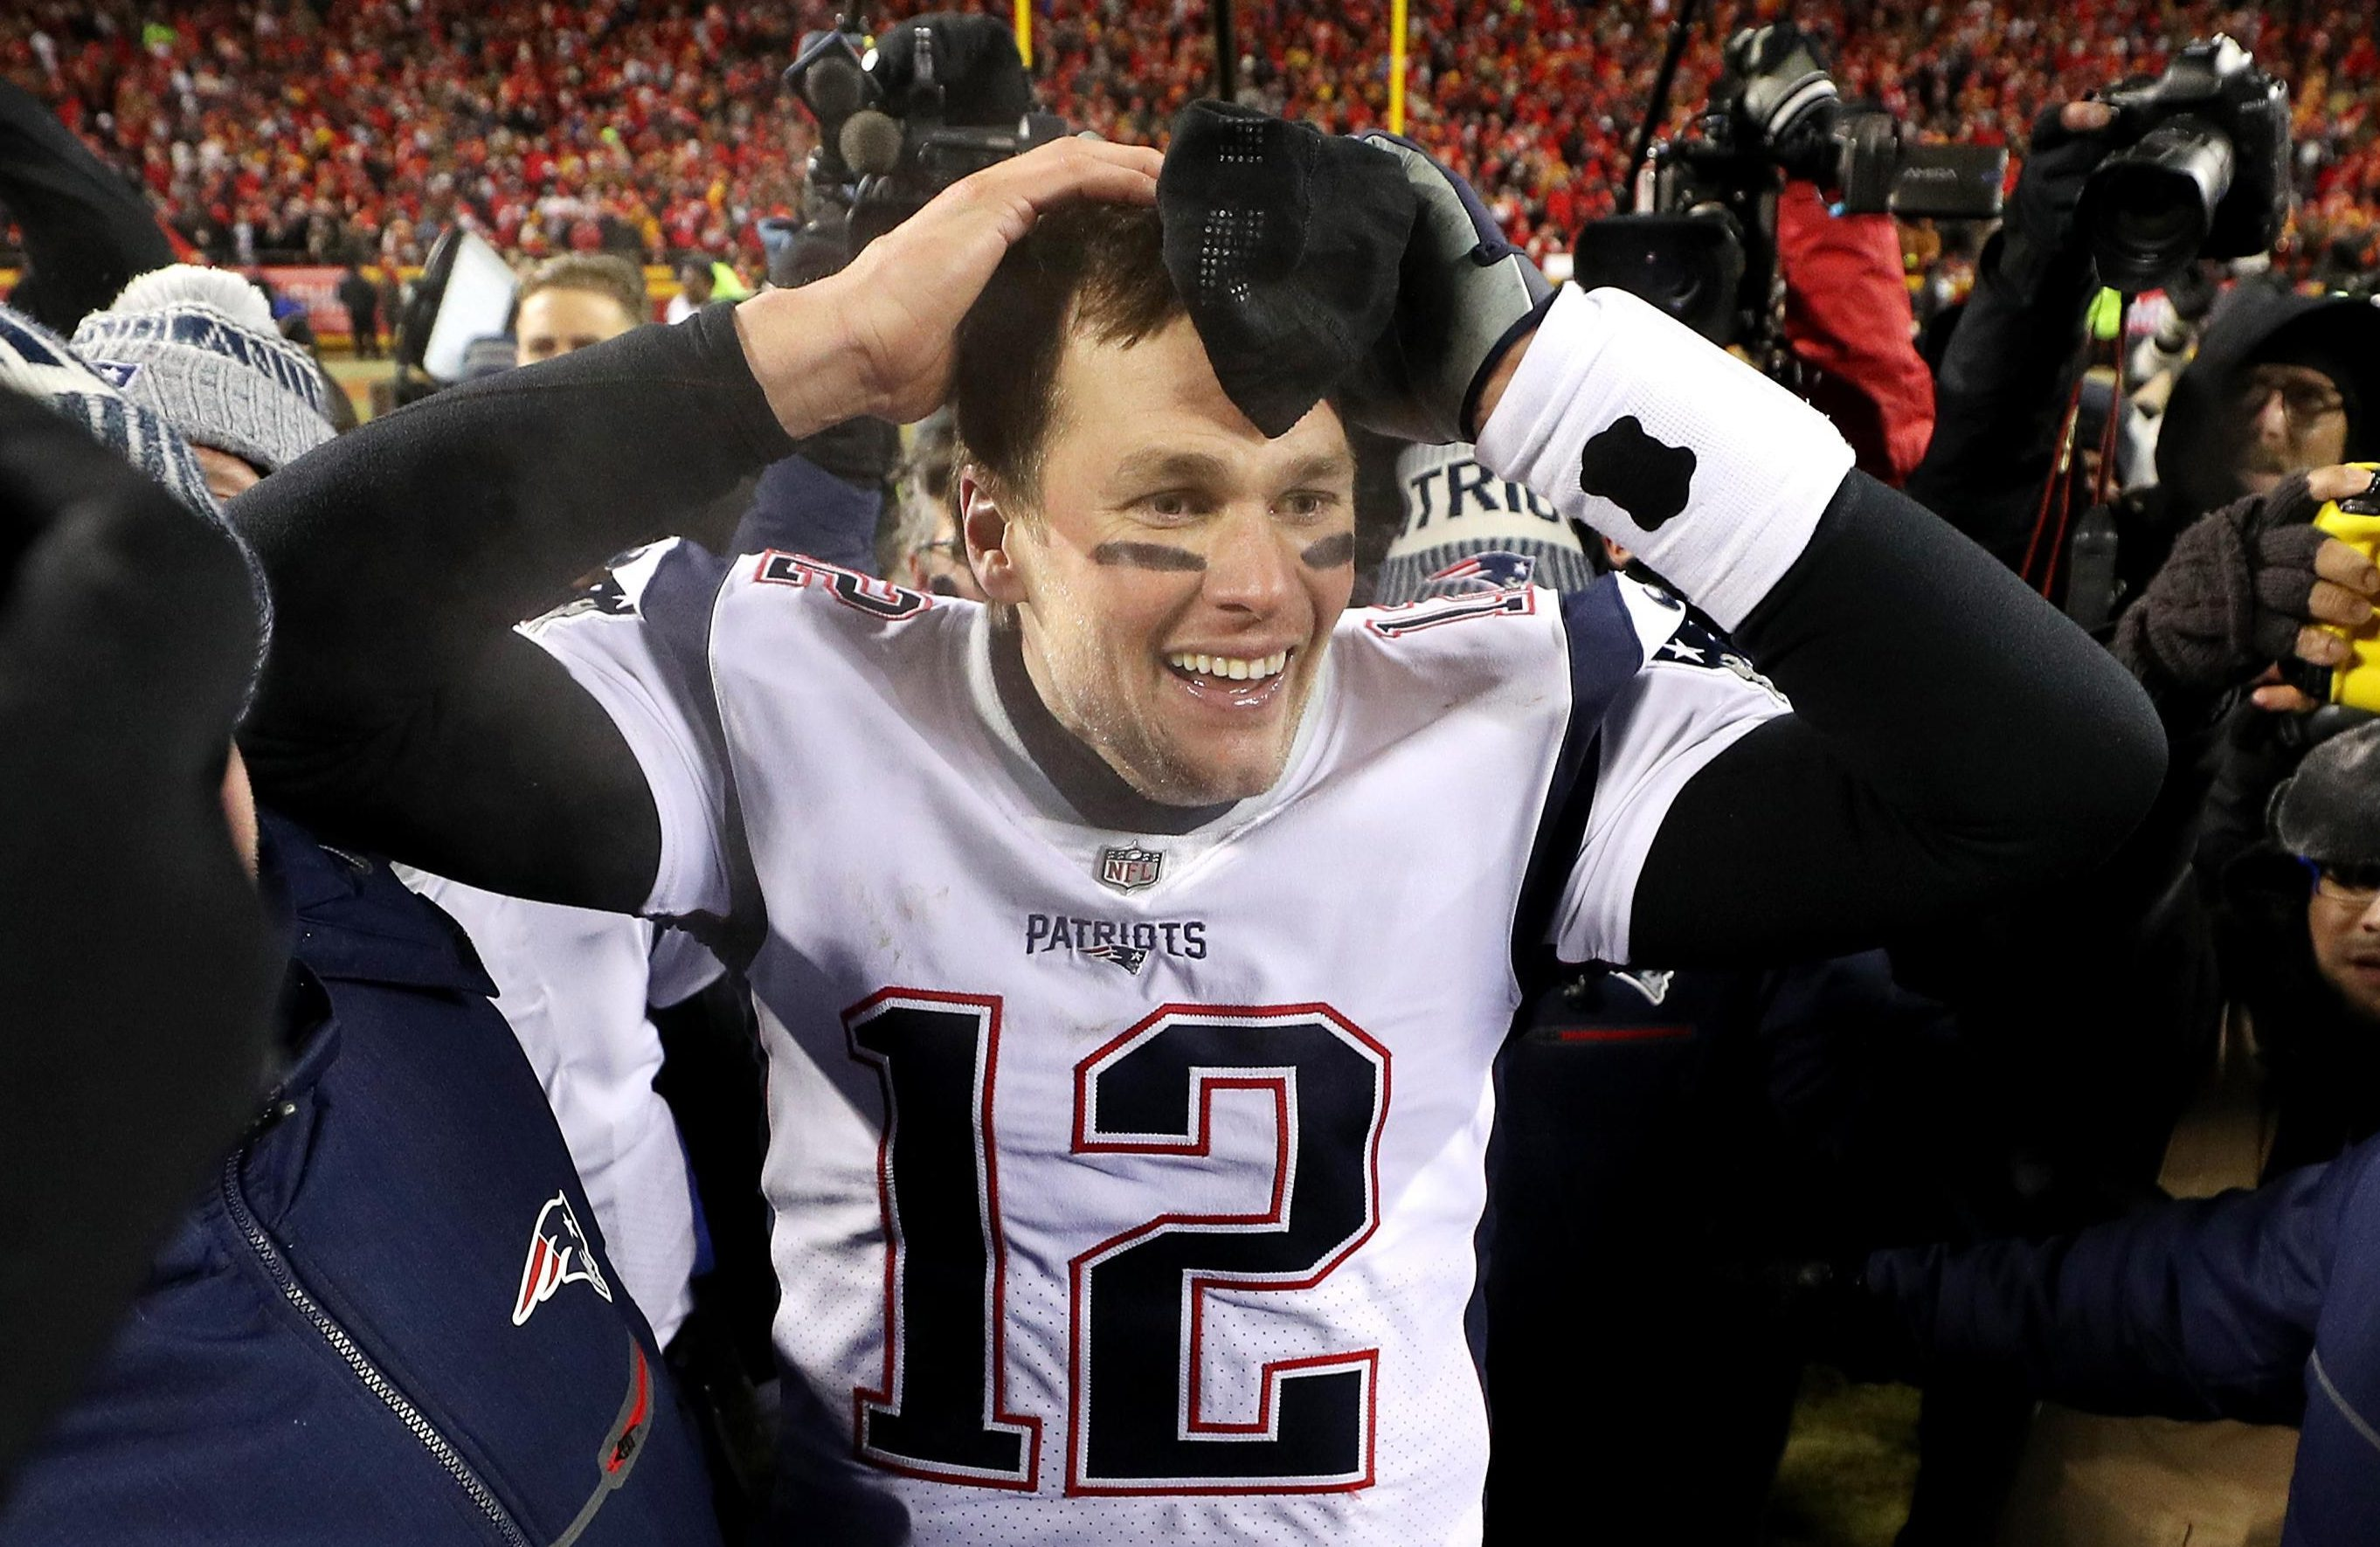 Brady can't hide his shock after clinching a dramatic overtime win